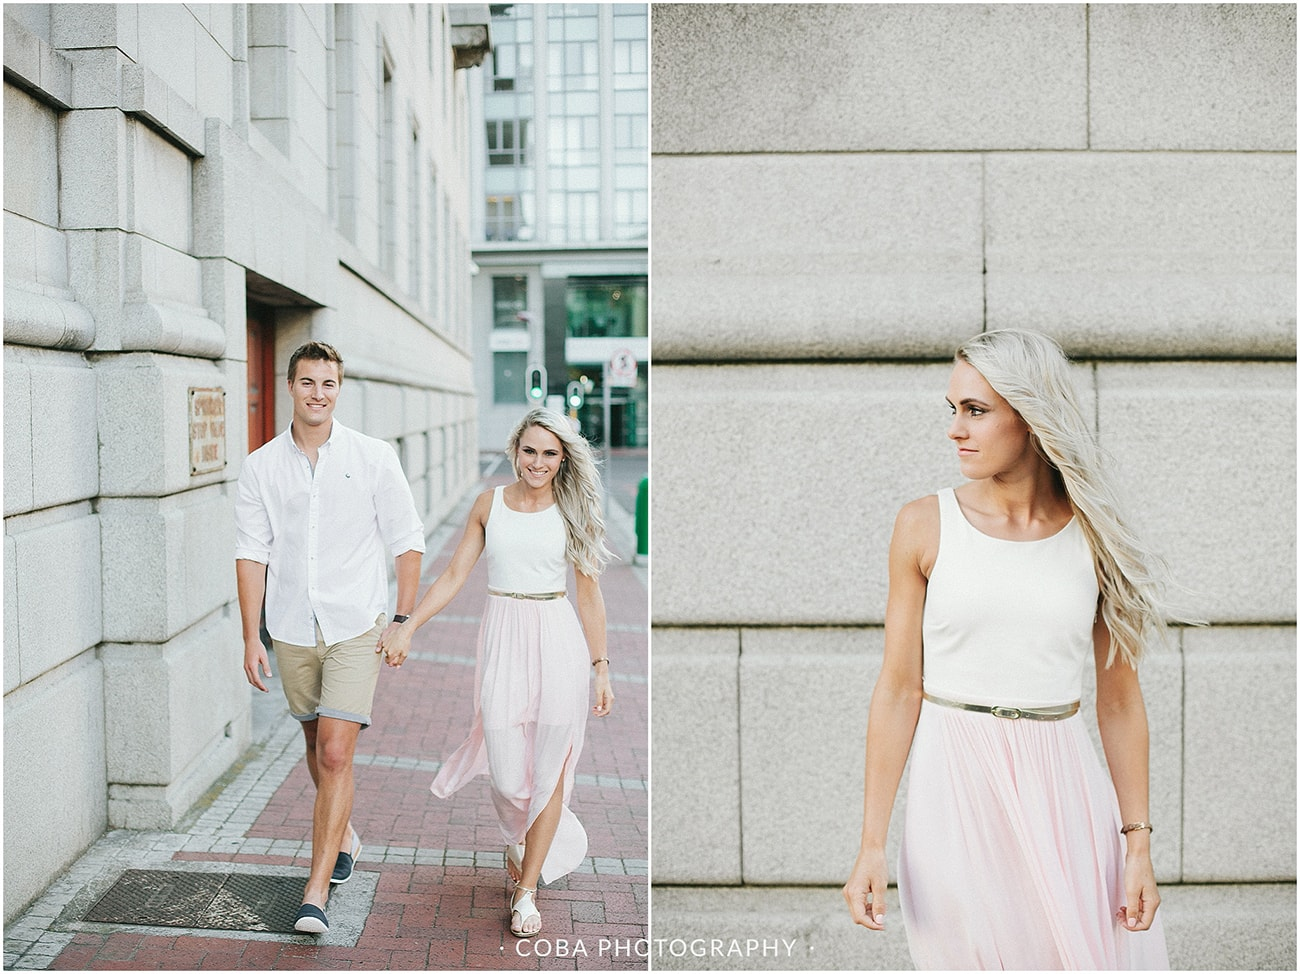 Andre & Tanya - city engagement cape town - coba photography (3)